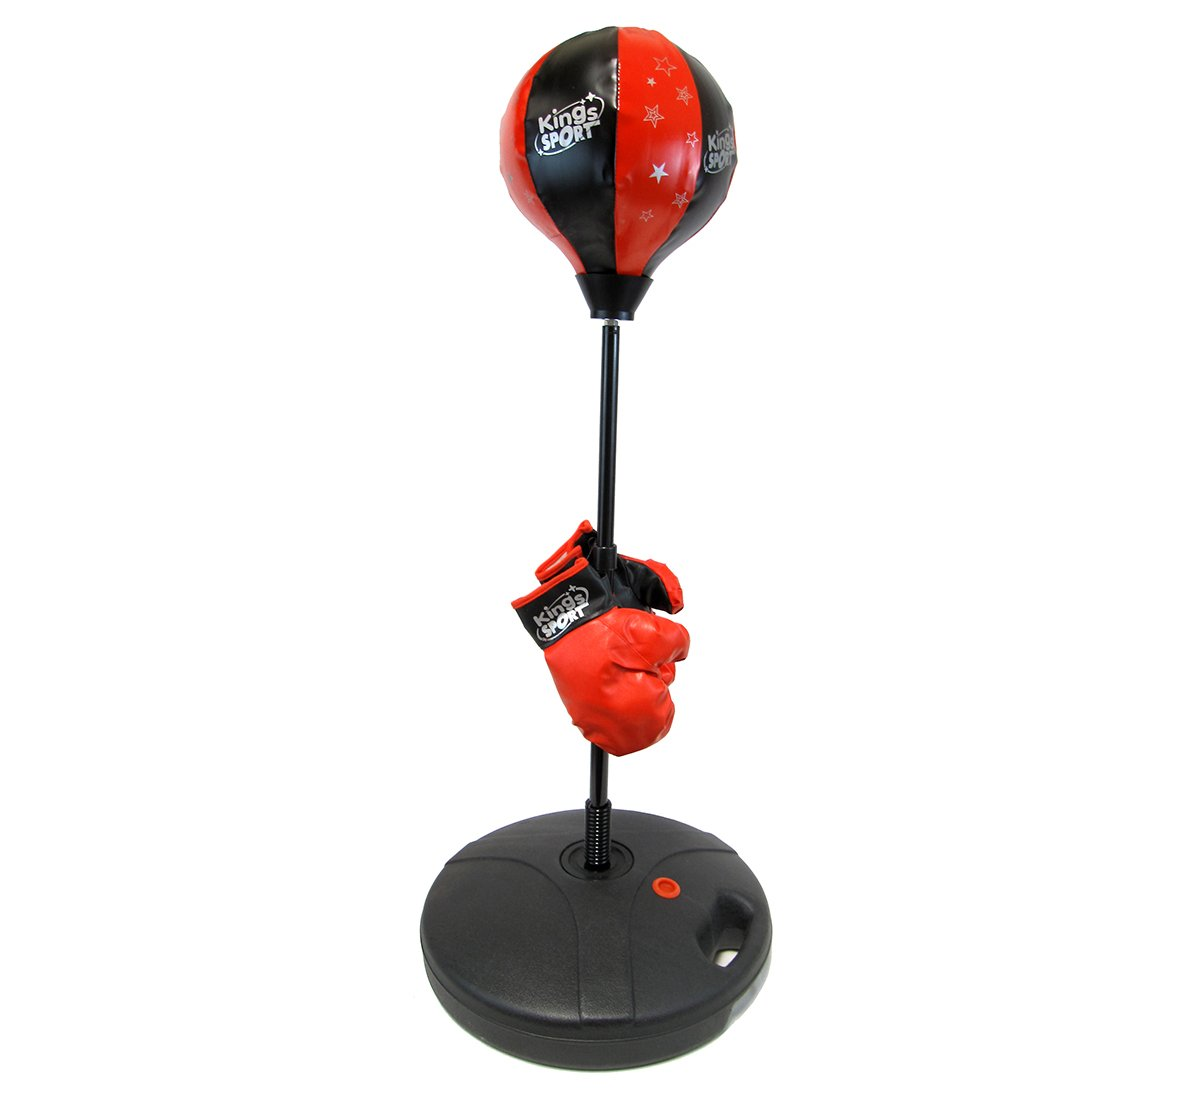 Velocity Toys Children's Beginning Freestanding Reflex Punching Bag w/ Pair of Gloves, Adjustable Height 48''''